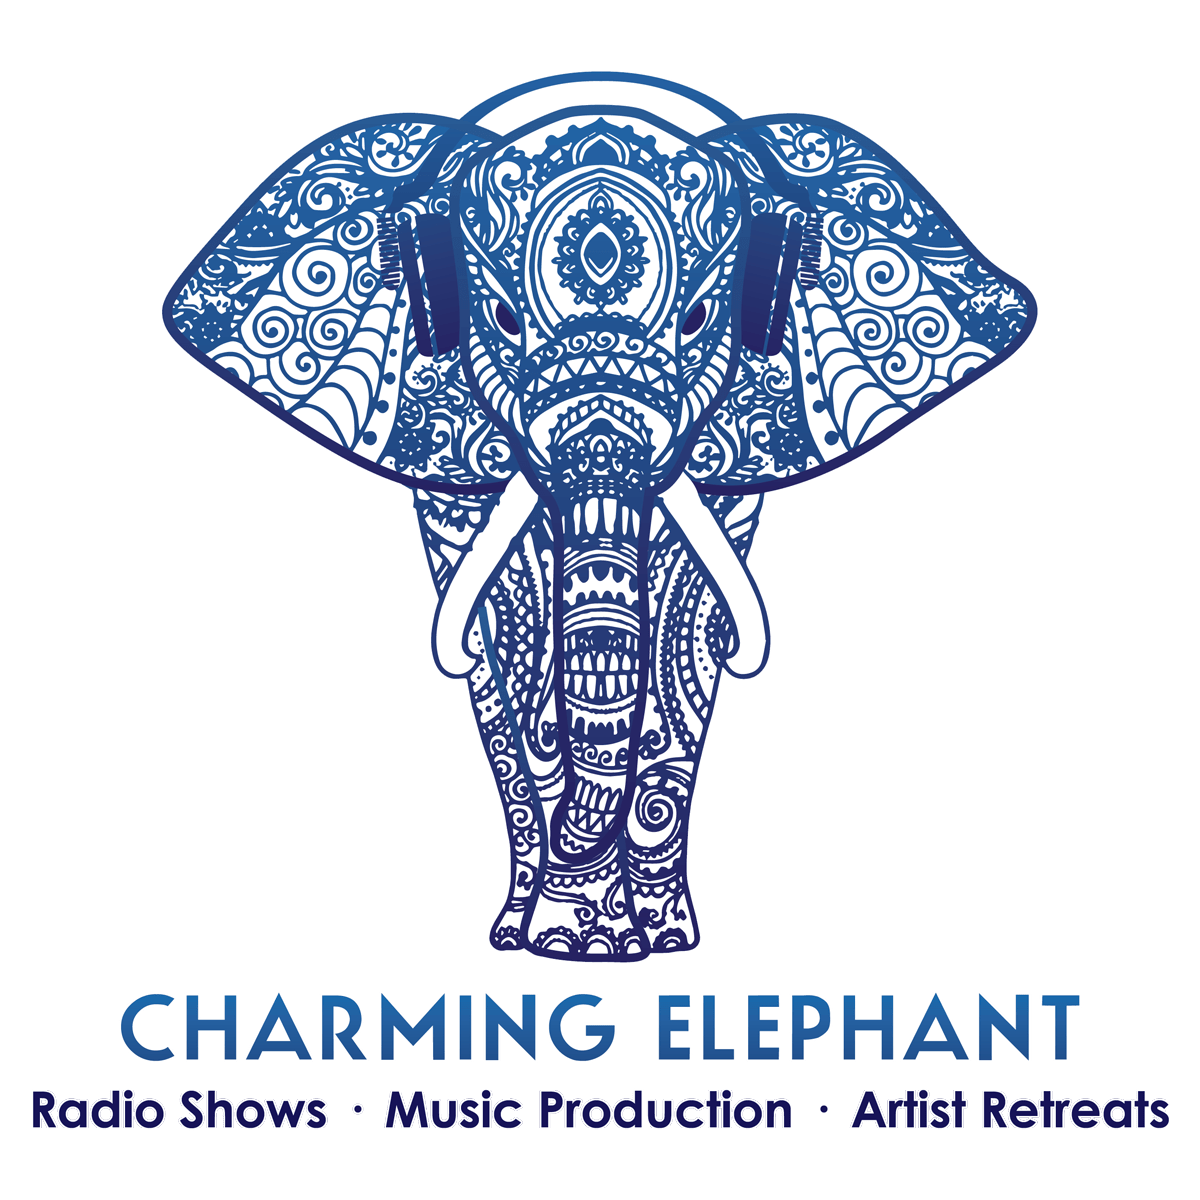 Charming Elephant: Radio Shows ·  Music Production ·  Artist Retreats